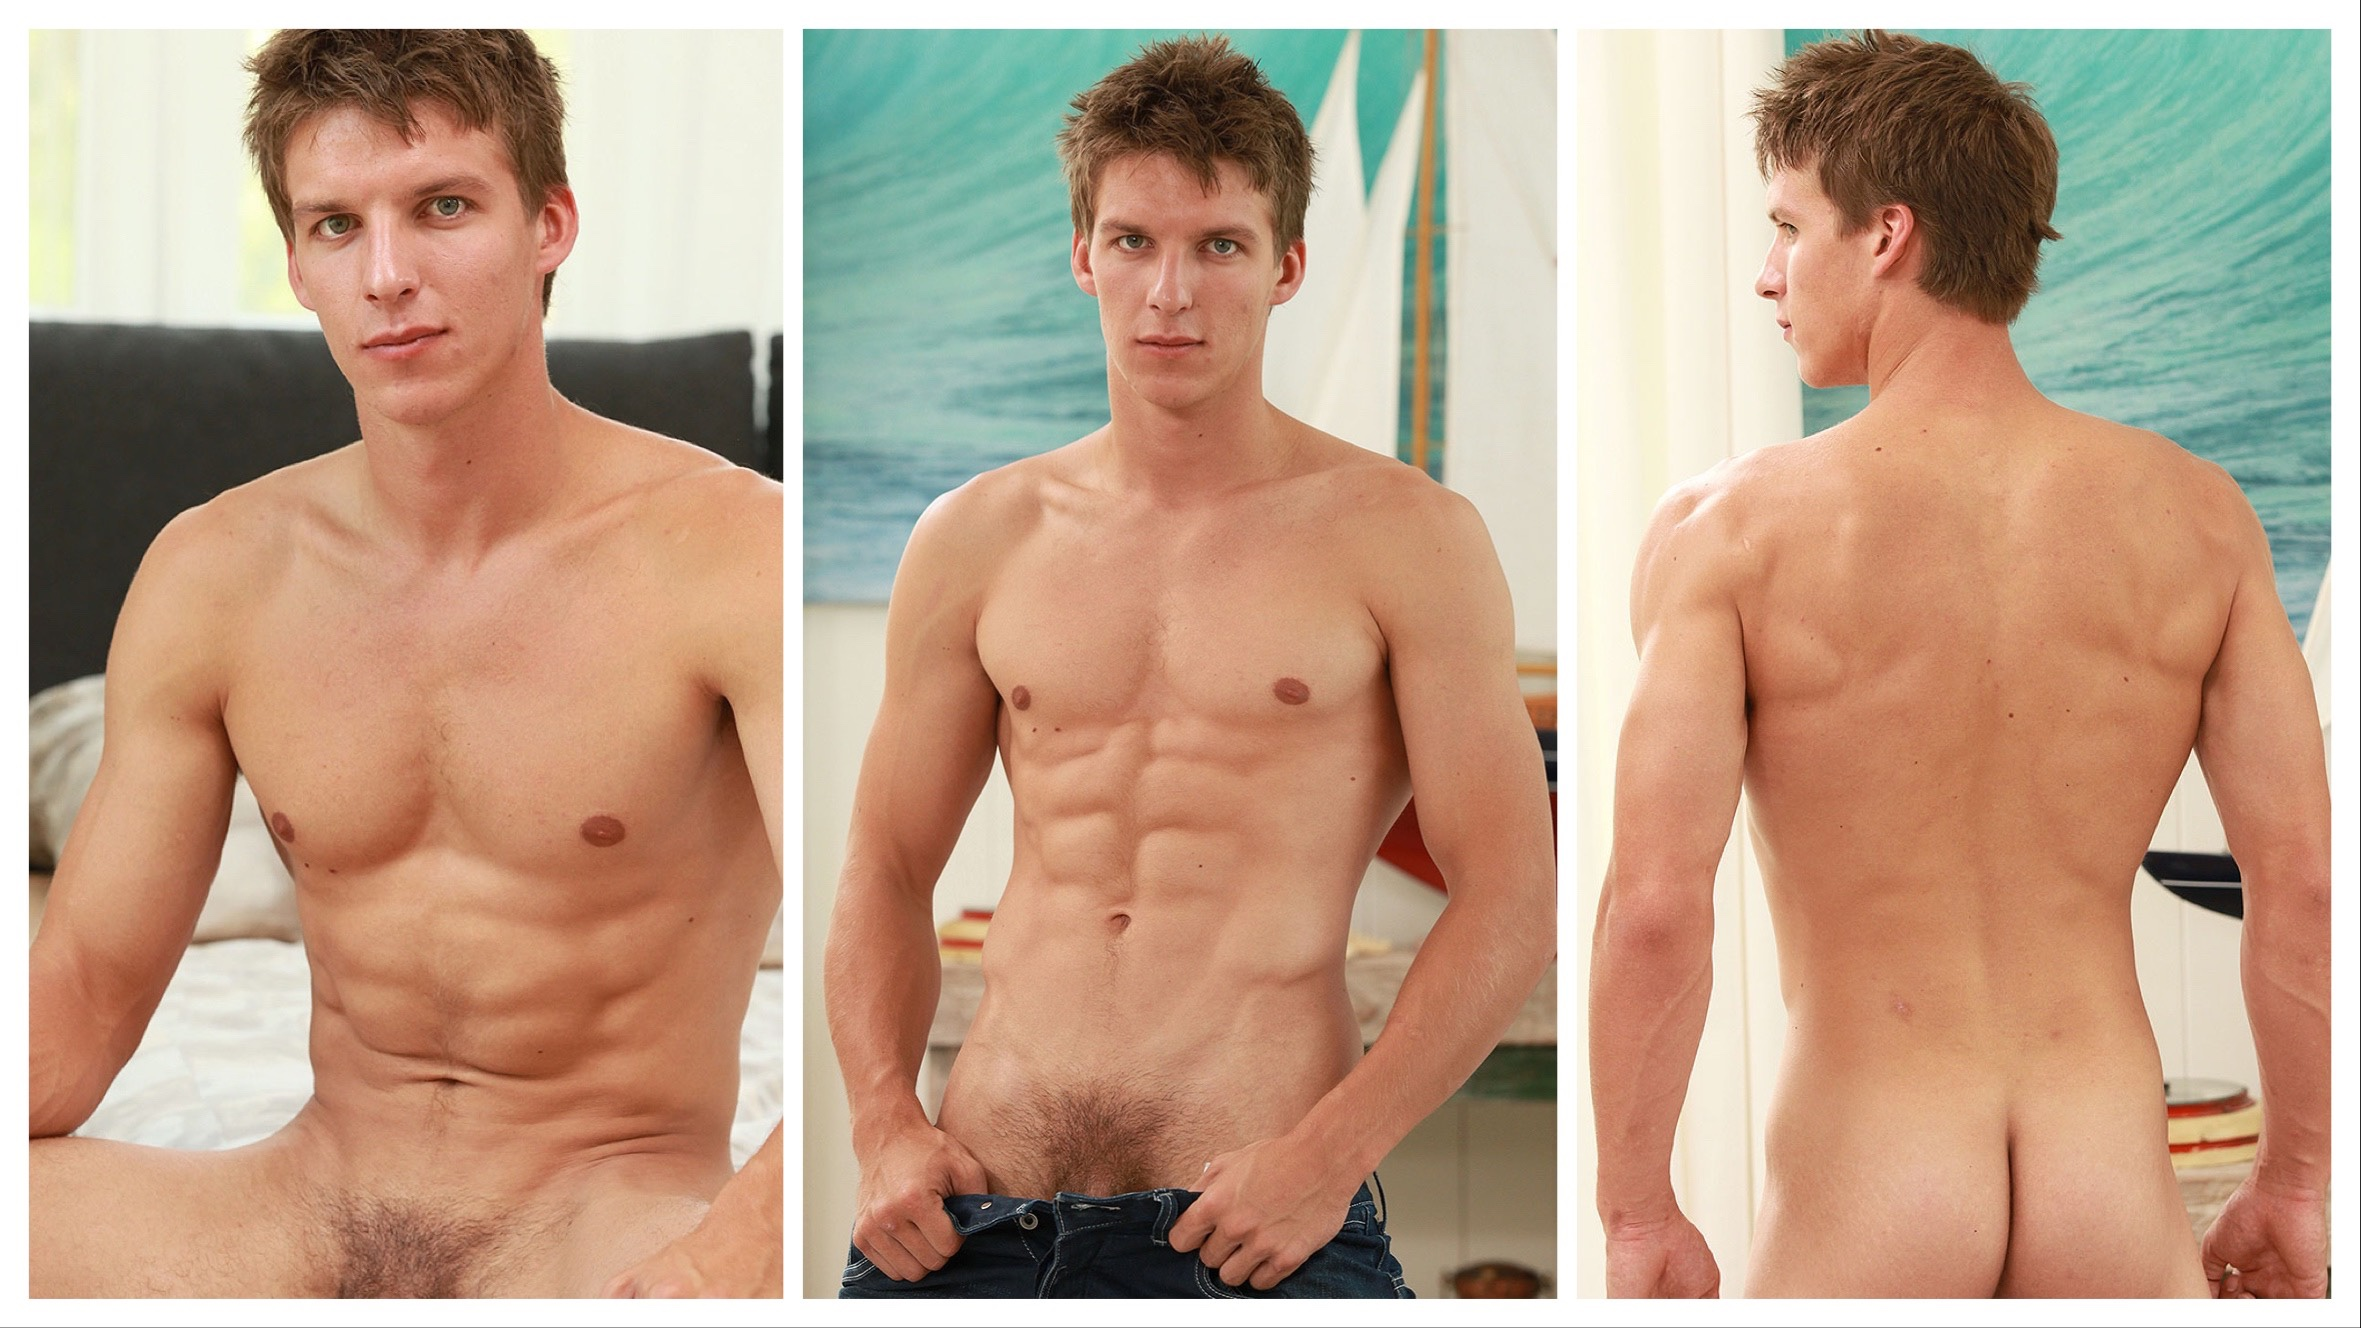 Harley Gershwin for Belami